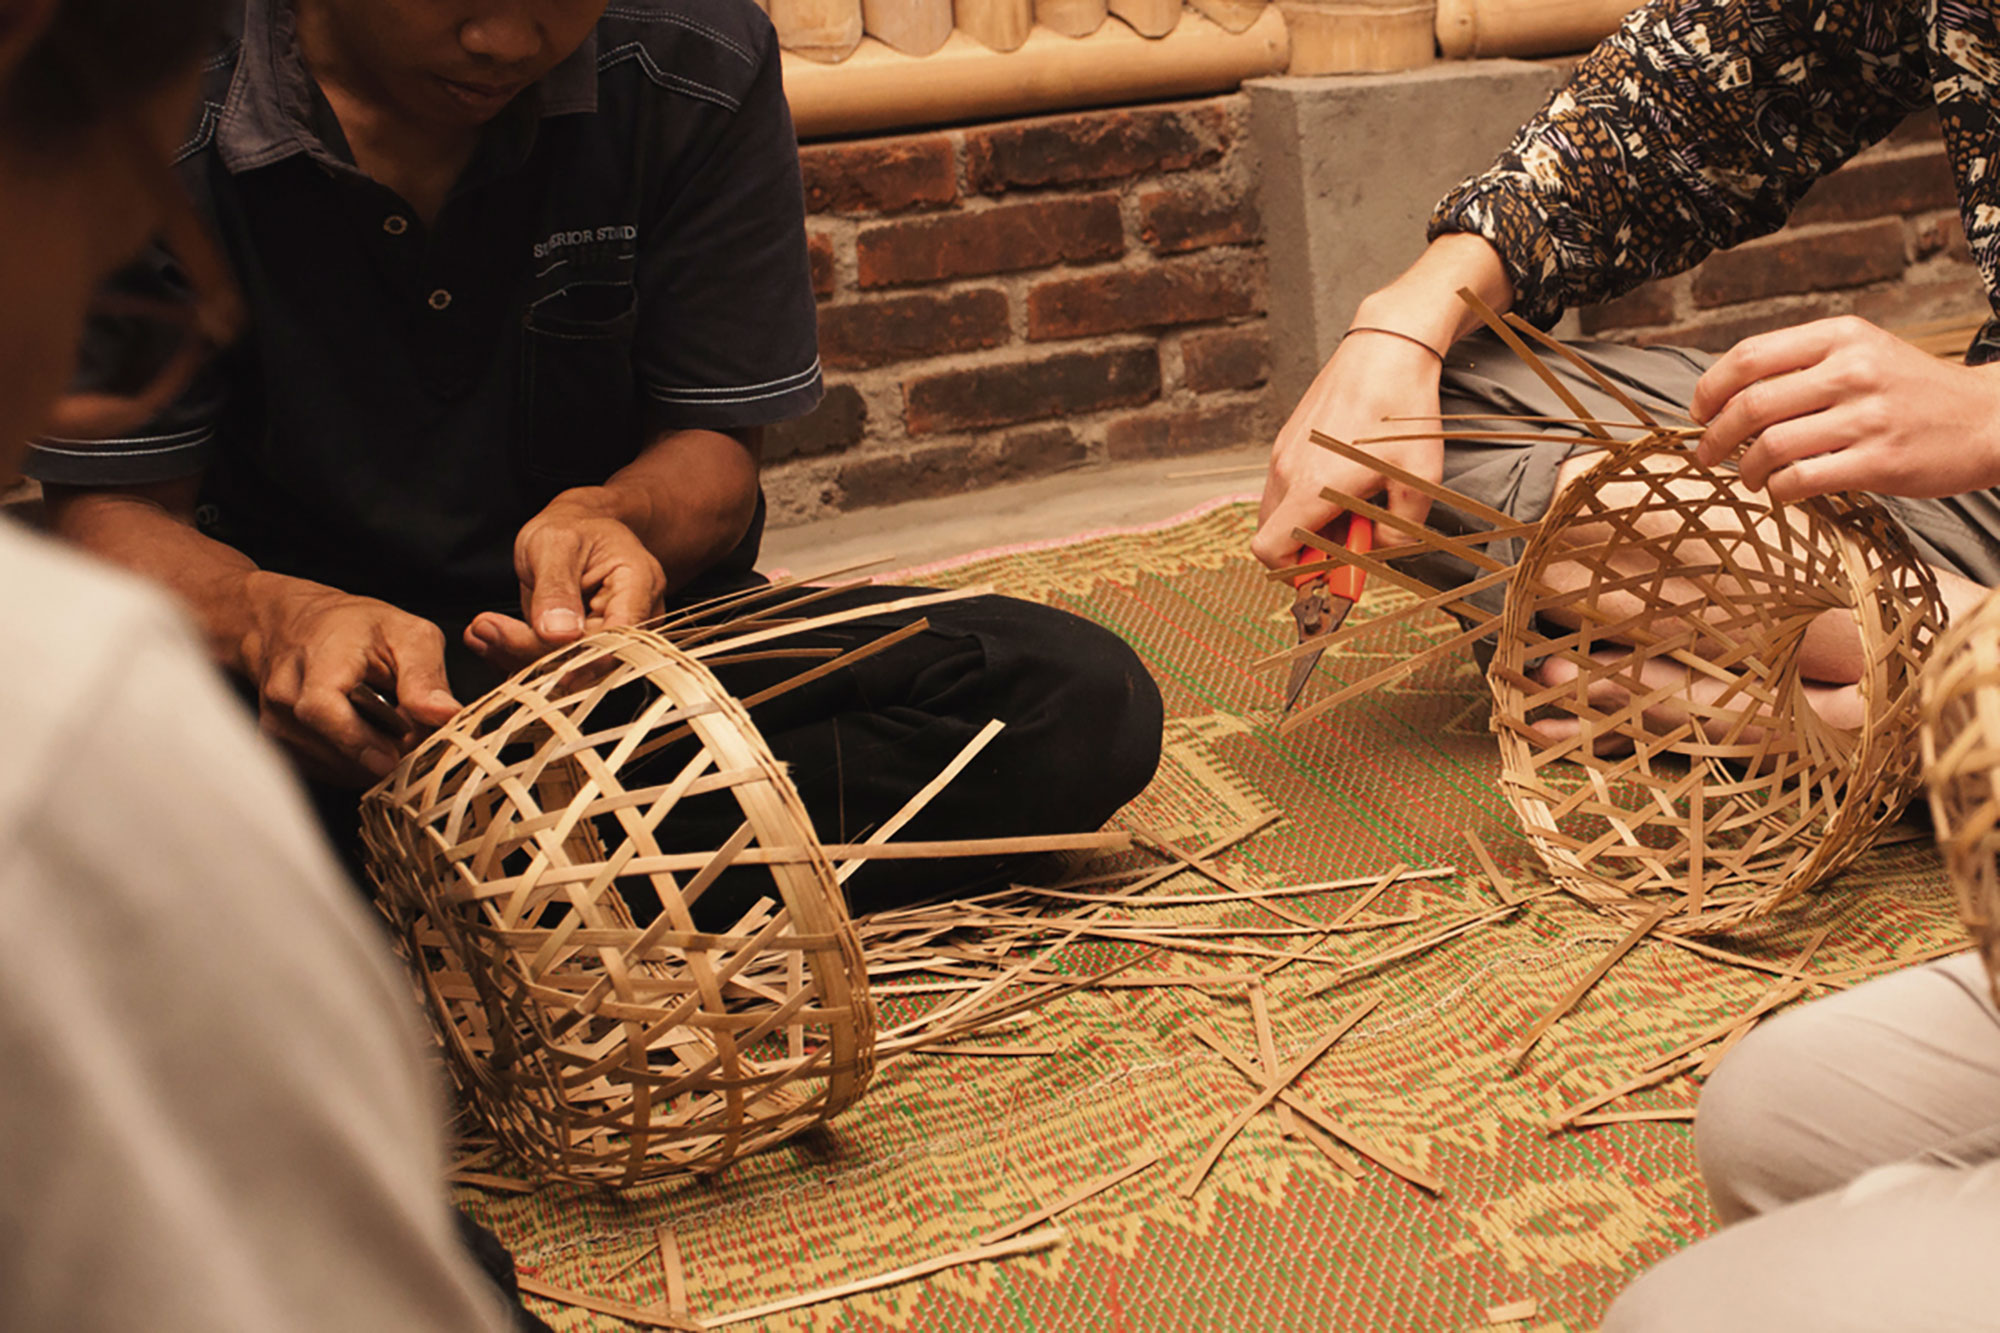 Bamboo basket weaving workshop held on location for DAB UTS students on Global Design Studio in a Central Javanese village by Spedagi organisation